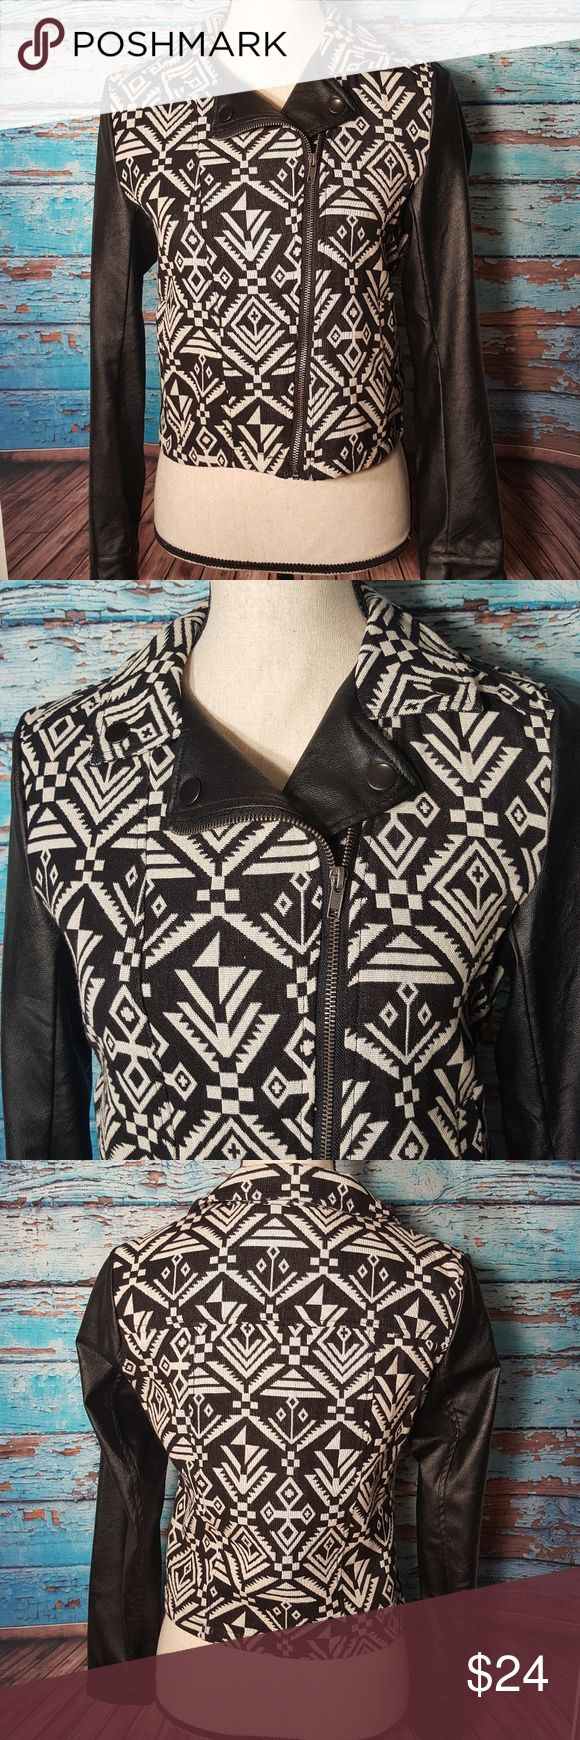 "BLU PEPPER JACKET Black and white vintage style jacket Aztec Print Like new condition! 17"" Bust 24"" Sleeve length 19"" Overall length   Shell:100% Cotton/sleeves 100% Polyurethane Blu Pepper Jackets & Coats"